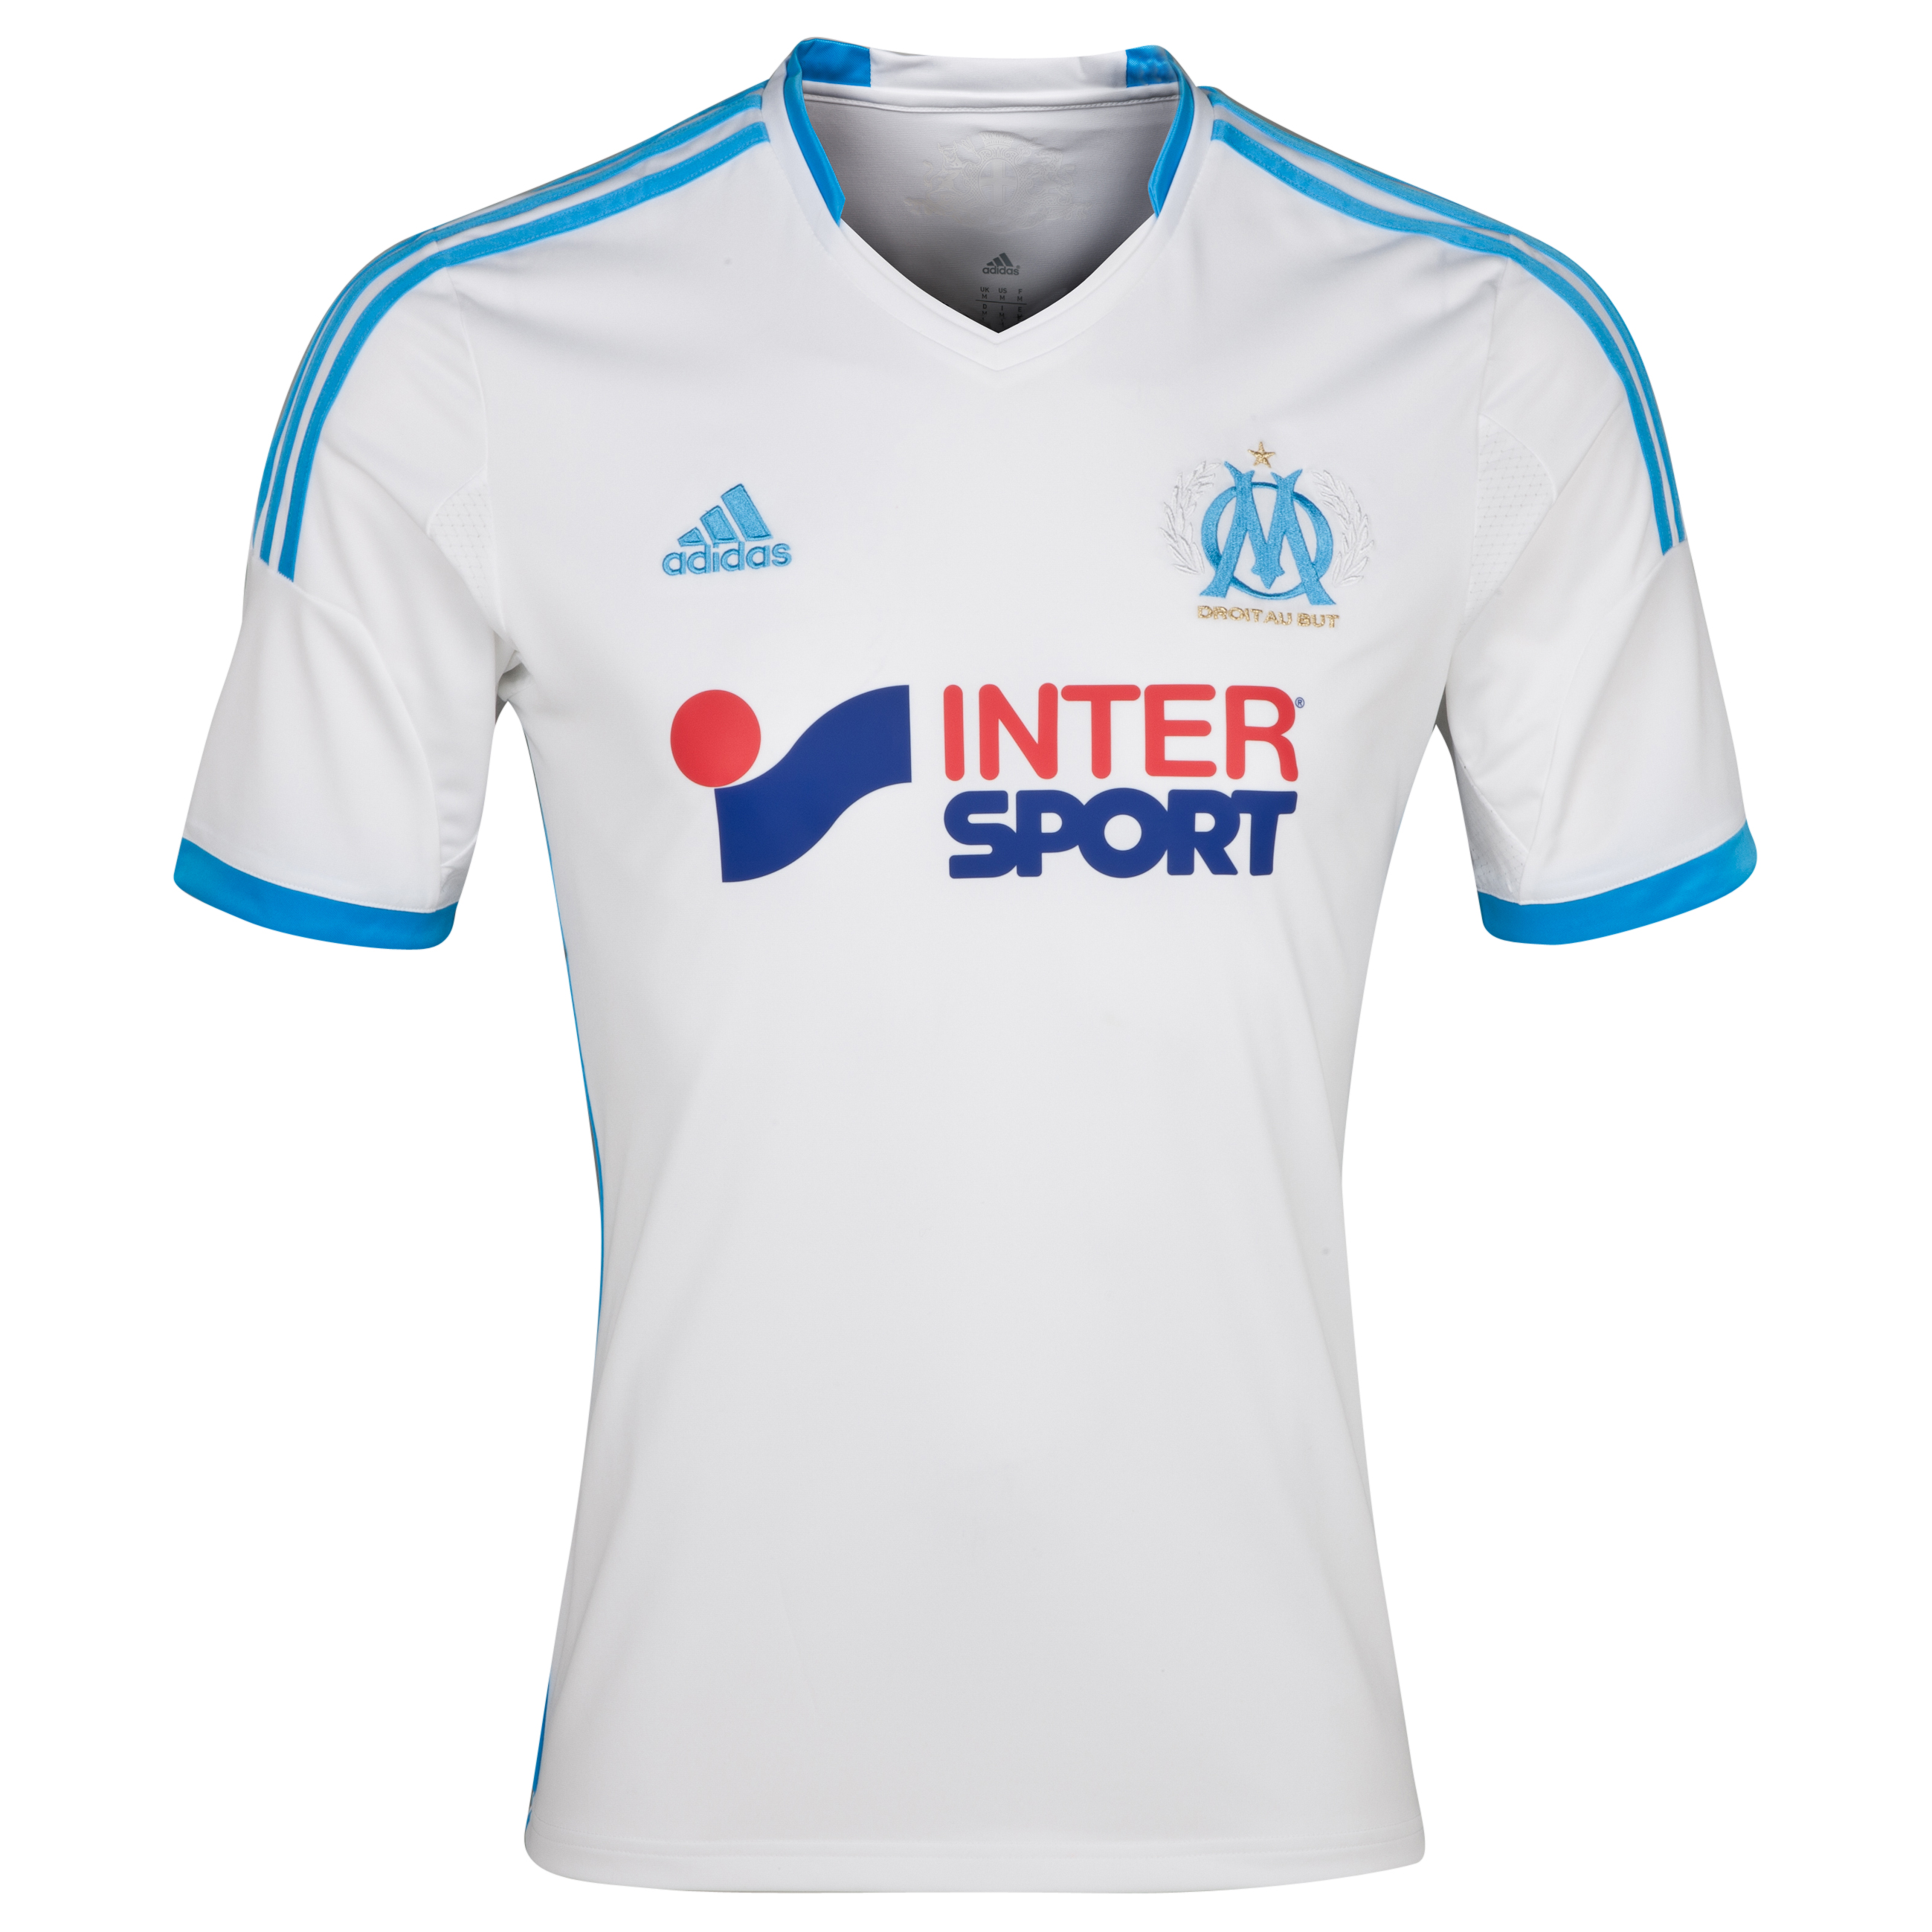 Olympique de Marseille Home Shirt SS 2013/14 - BWIN Offer White